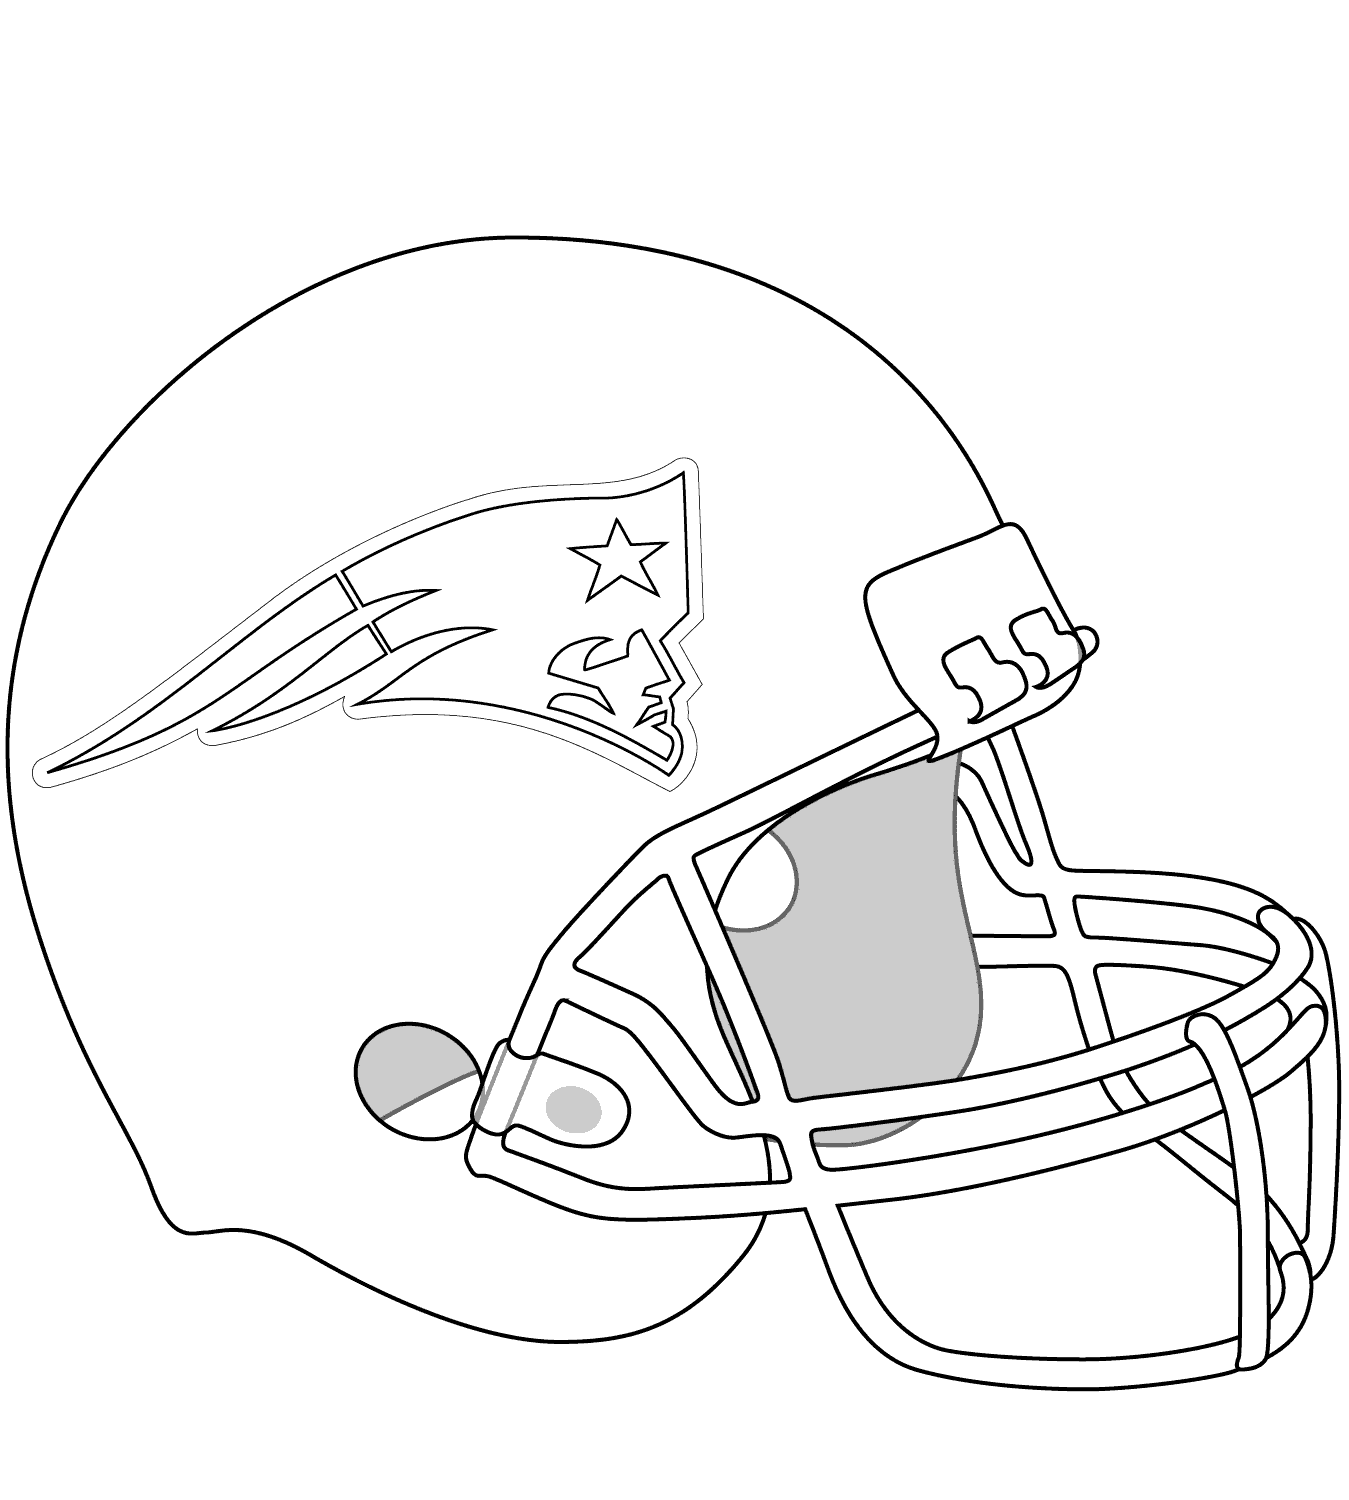 New England Patriots Helmet Coloring Page